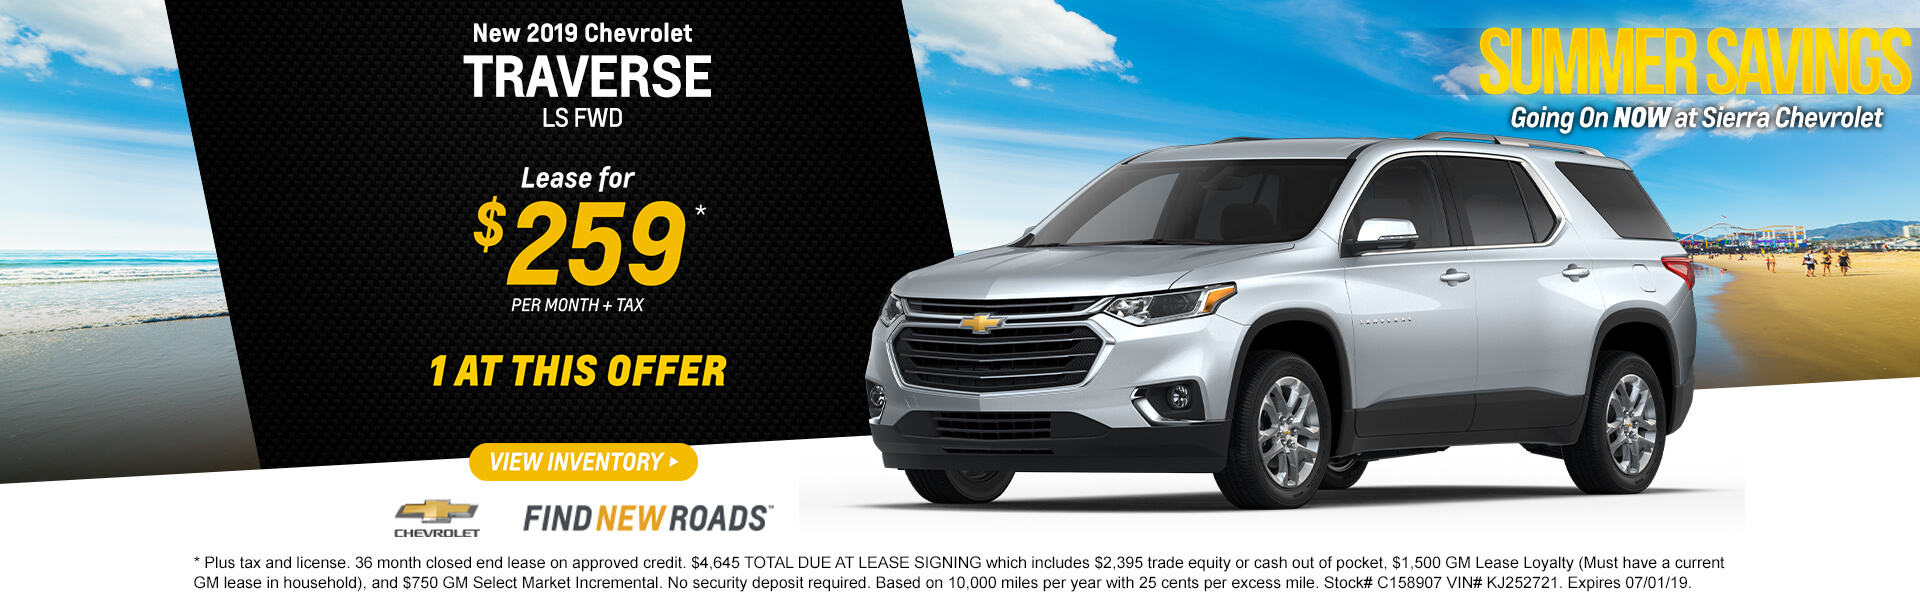 2019 Chevrolet Traverse LS FWD  Lease for $259*  per month + tax   * Plus tax and license. 36 month closed end lease on approved credit. $4,645 TOTAL DUE AT LEASE SIGNING which includes $2,395 trade equity or cash out of pocket, $1,500 GM Lease Loyalty (Must have a current GM lease in household), and $750 GM Select Market Incremental. No security deposit required. Based on 10,000 miles per year with 25 cents per excess mile. Stock# C158907 VIN# KJ252721. Expires 07/01/19.